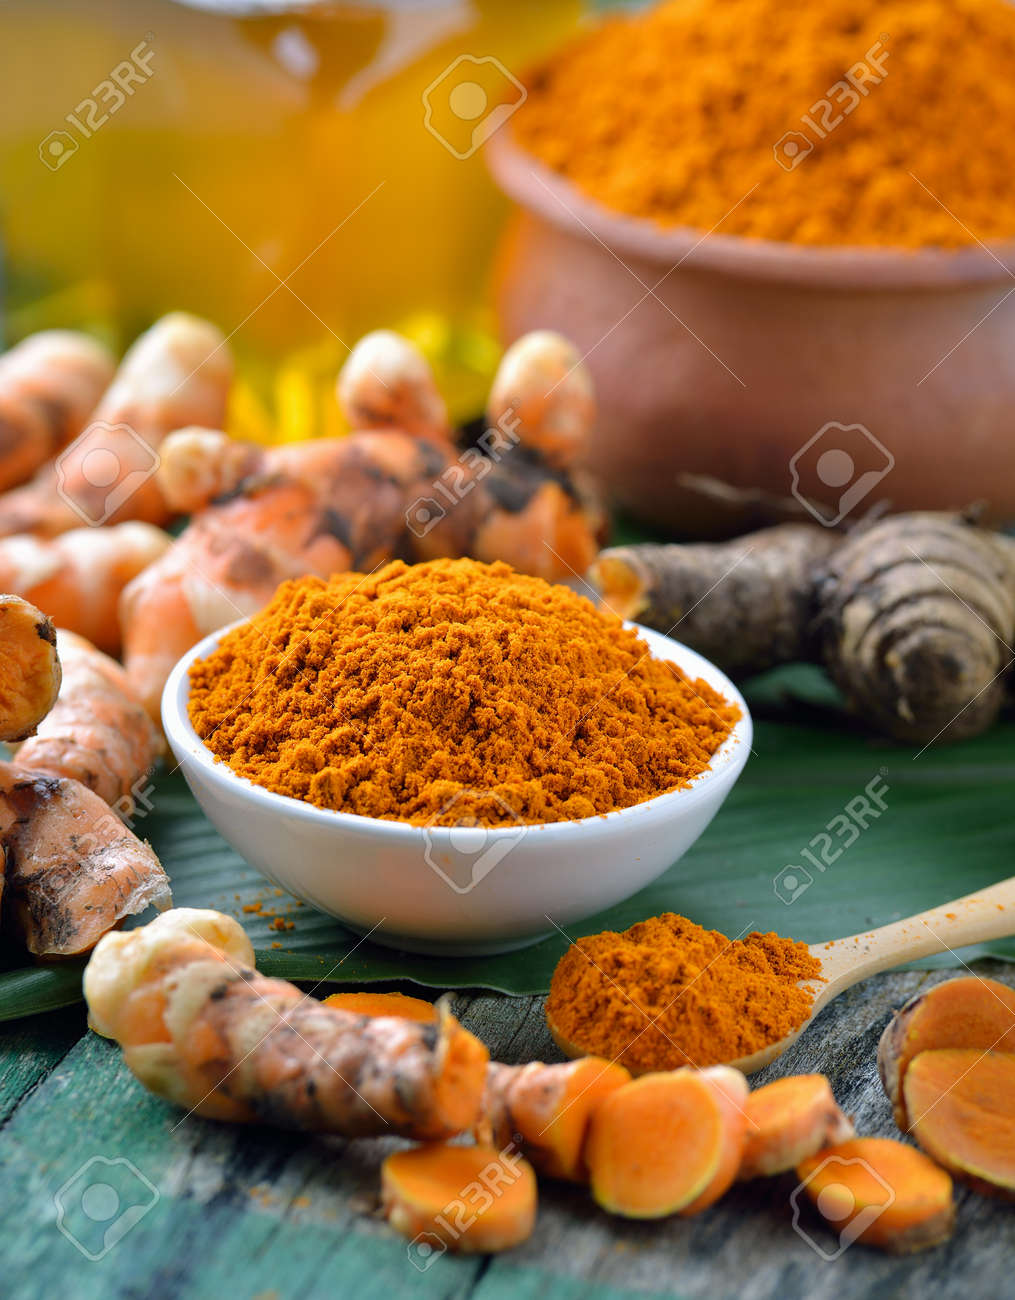 fresh turmeric roots on wooden table - 47729204